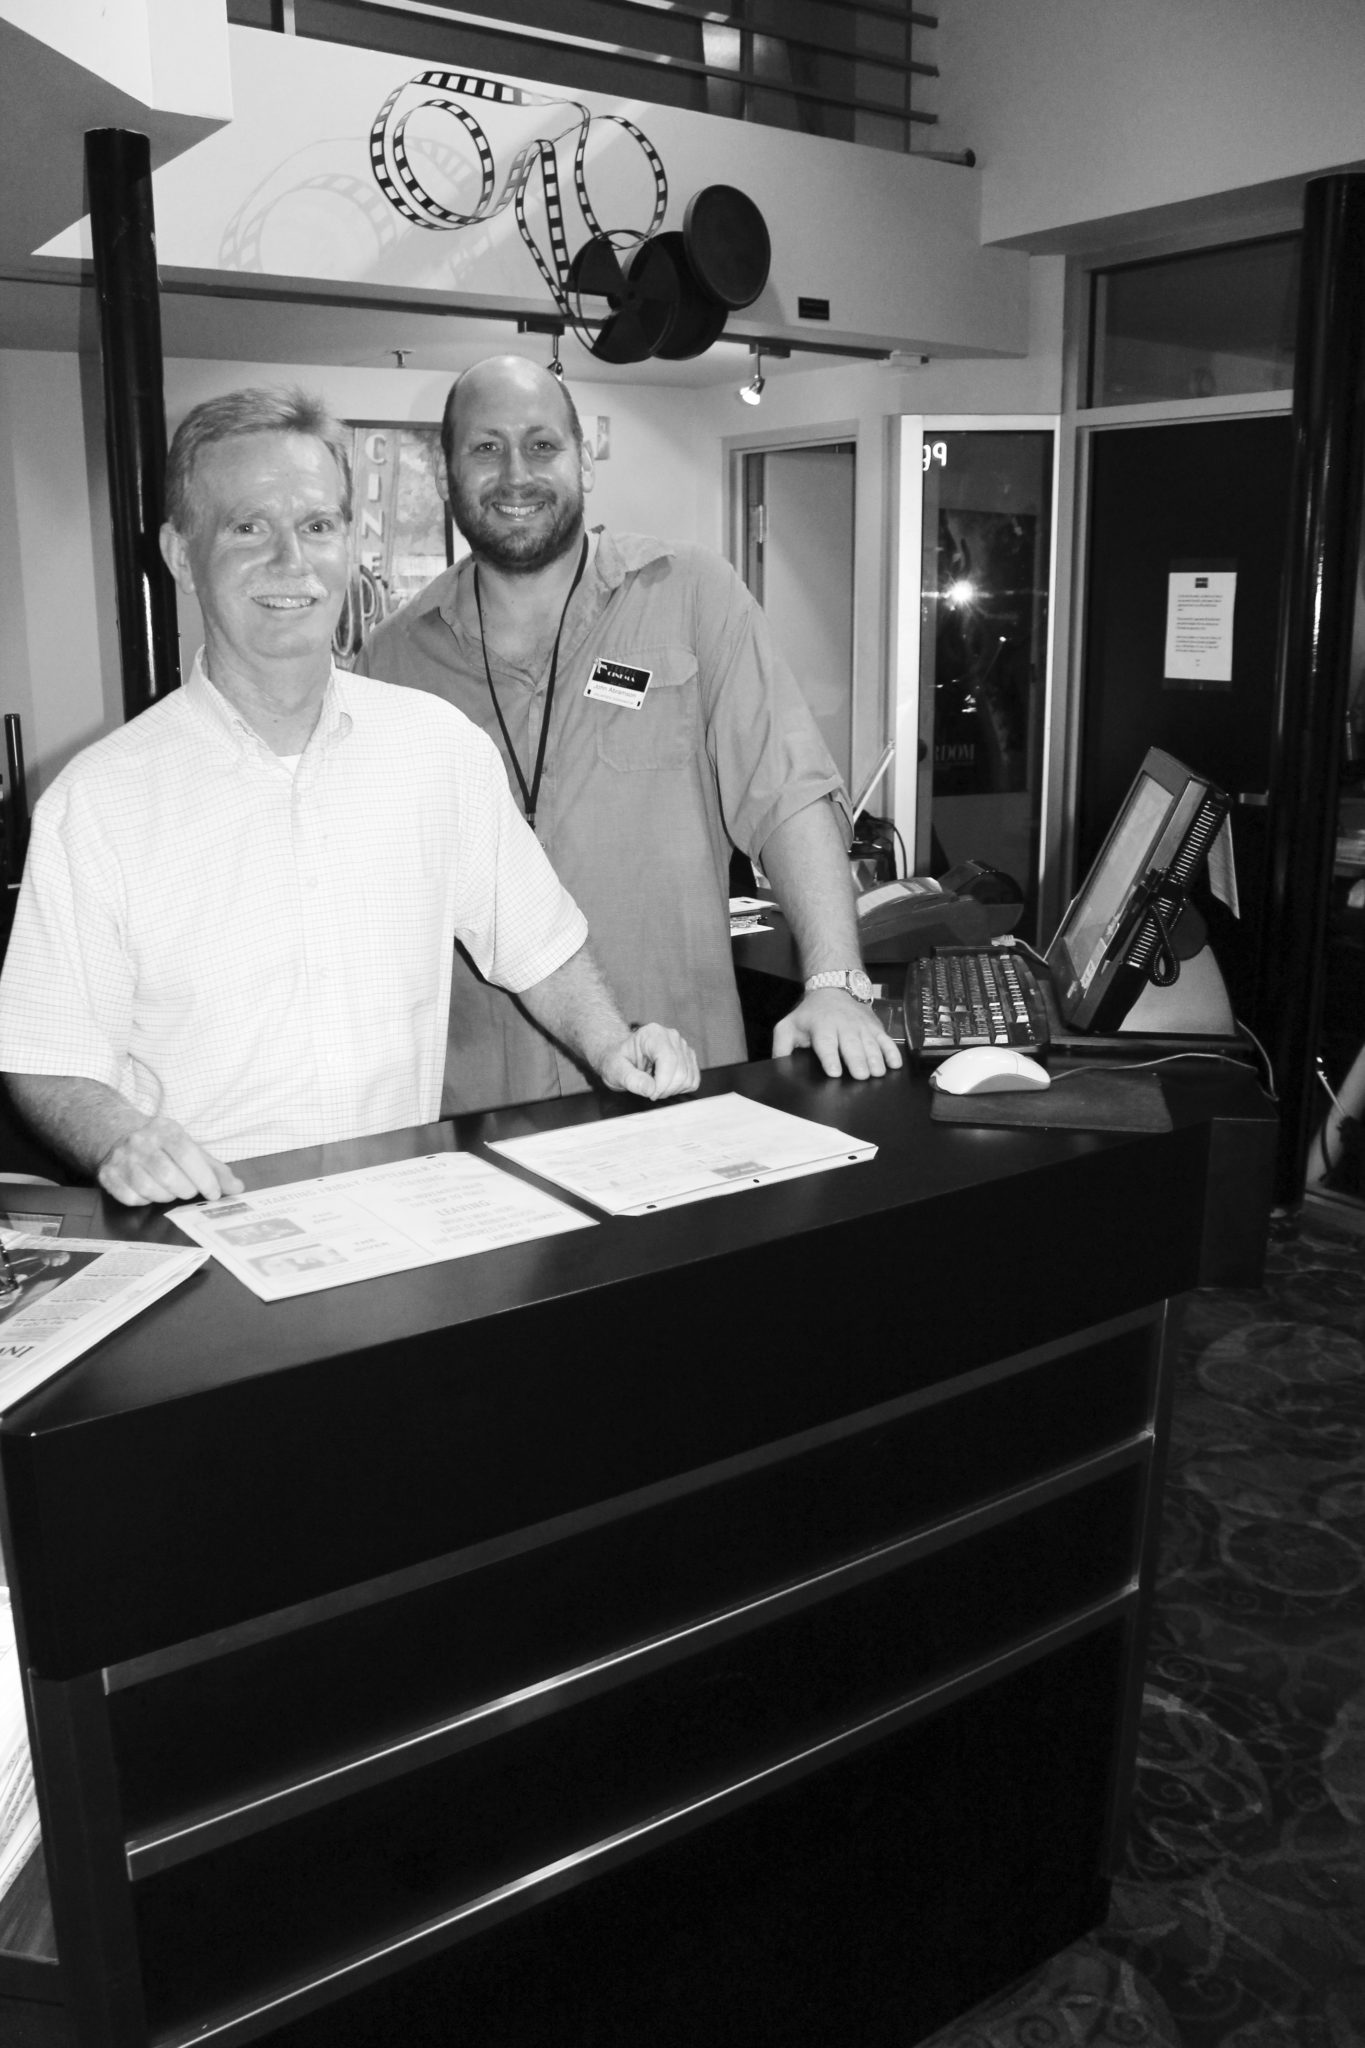 John Parce and Tropic Cinema Manager John Abramson greet folks as they enter the theater.